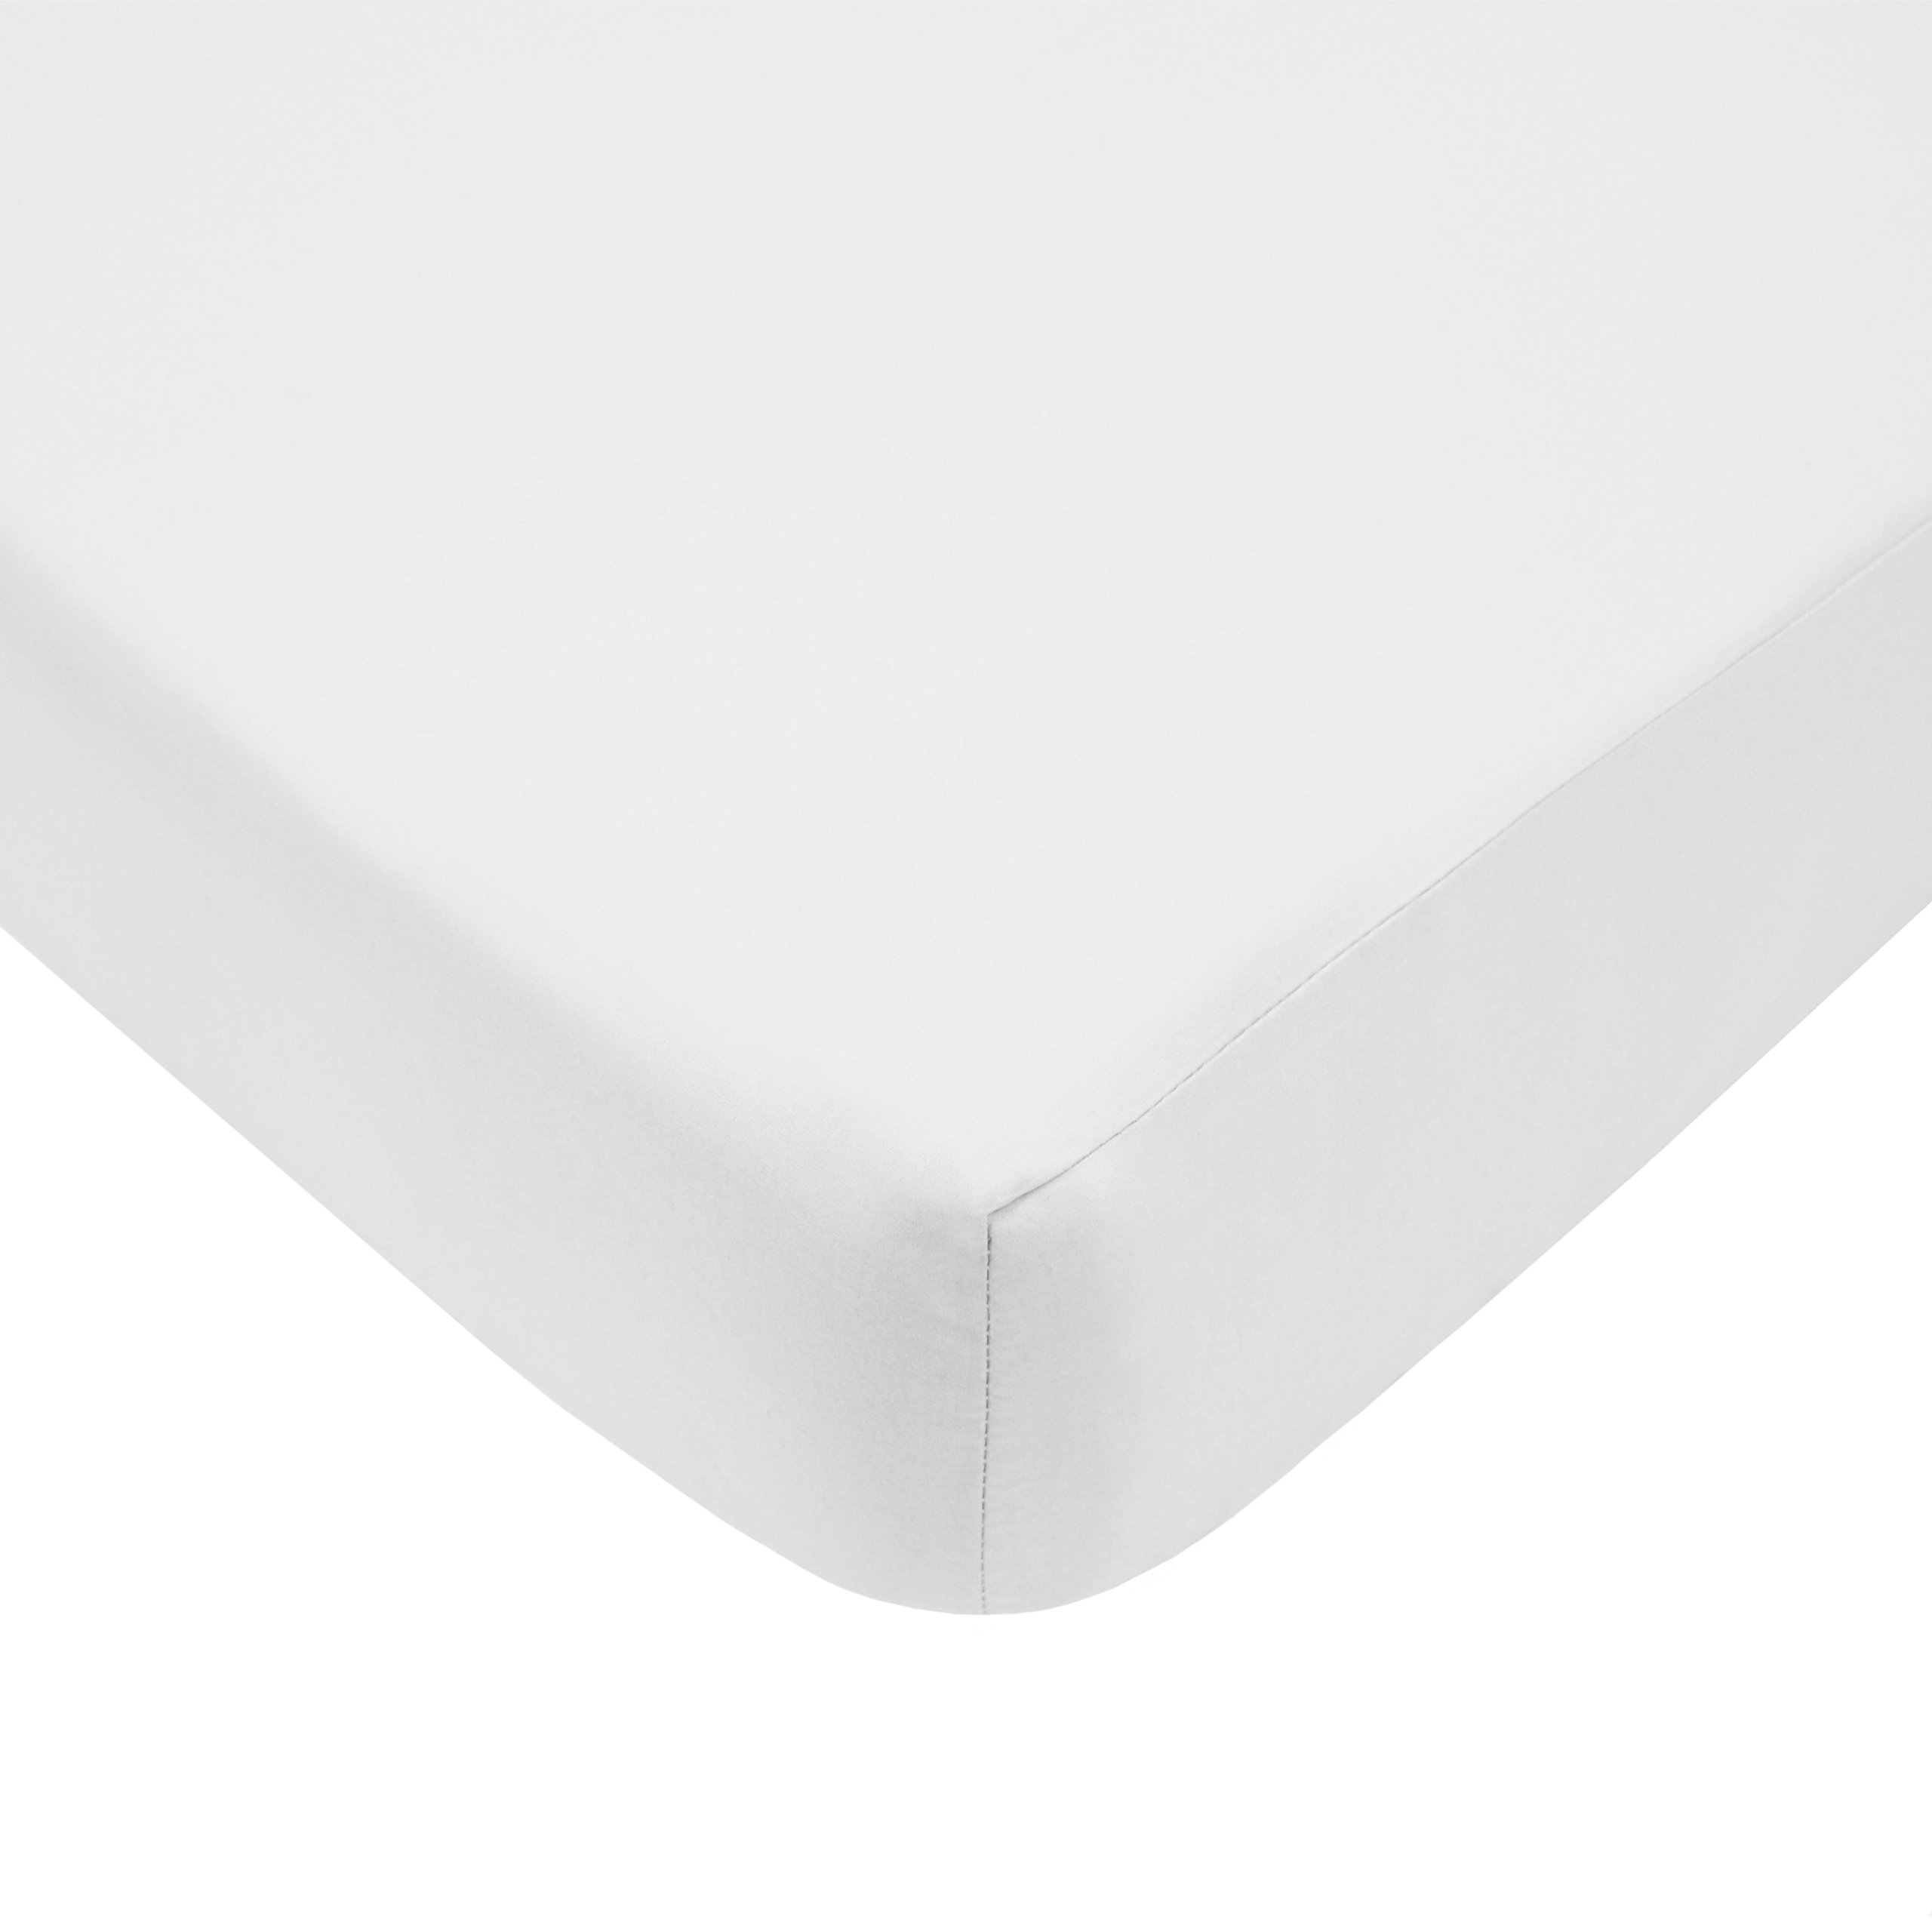 American Baby Company 100% Cotton Percale Fitted Crib Sheet for Standard Crib and Toddler Mattresses, White